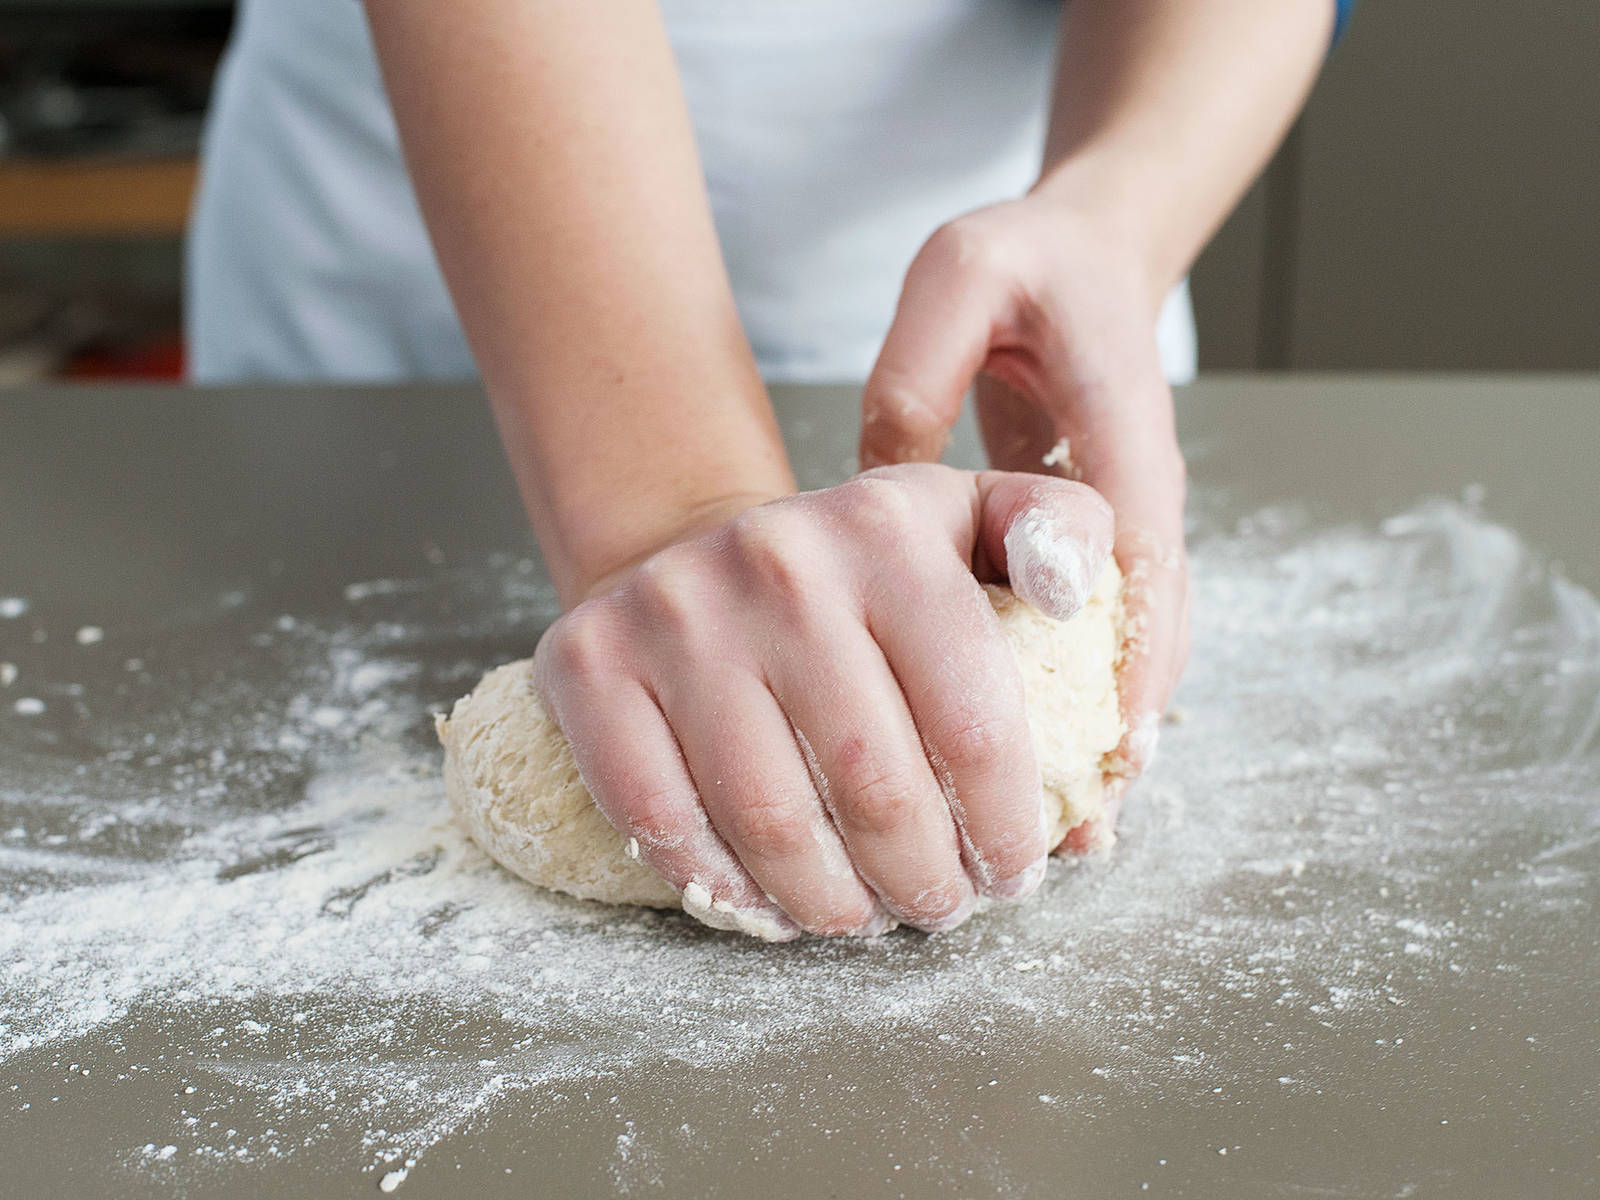 To prepare the buns, add flour, yeast, salt, and malt to a large mixing bowl. Stir to combine, then add some milk, water, sugar, soft butter, and half of the beaten egg. Combine with a rubber spatula. Then knead for approx. 6 min. with hands, until the dough springs back when you push it gently with your finger.